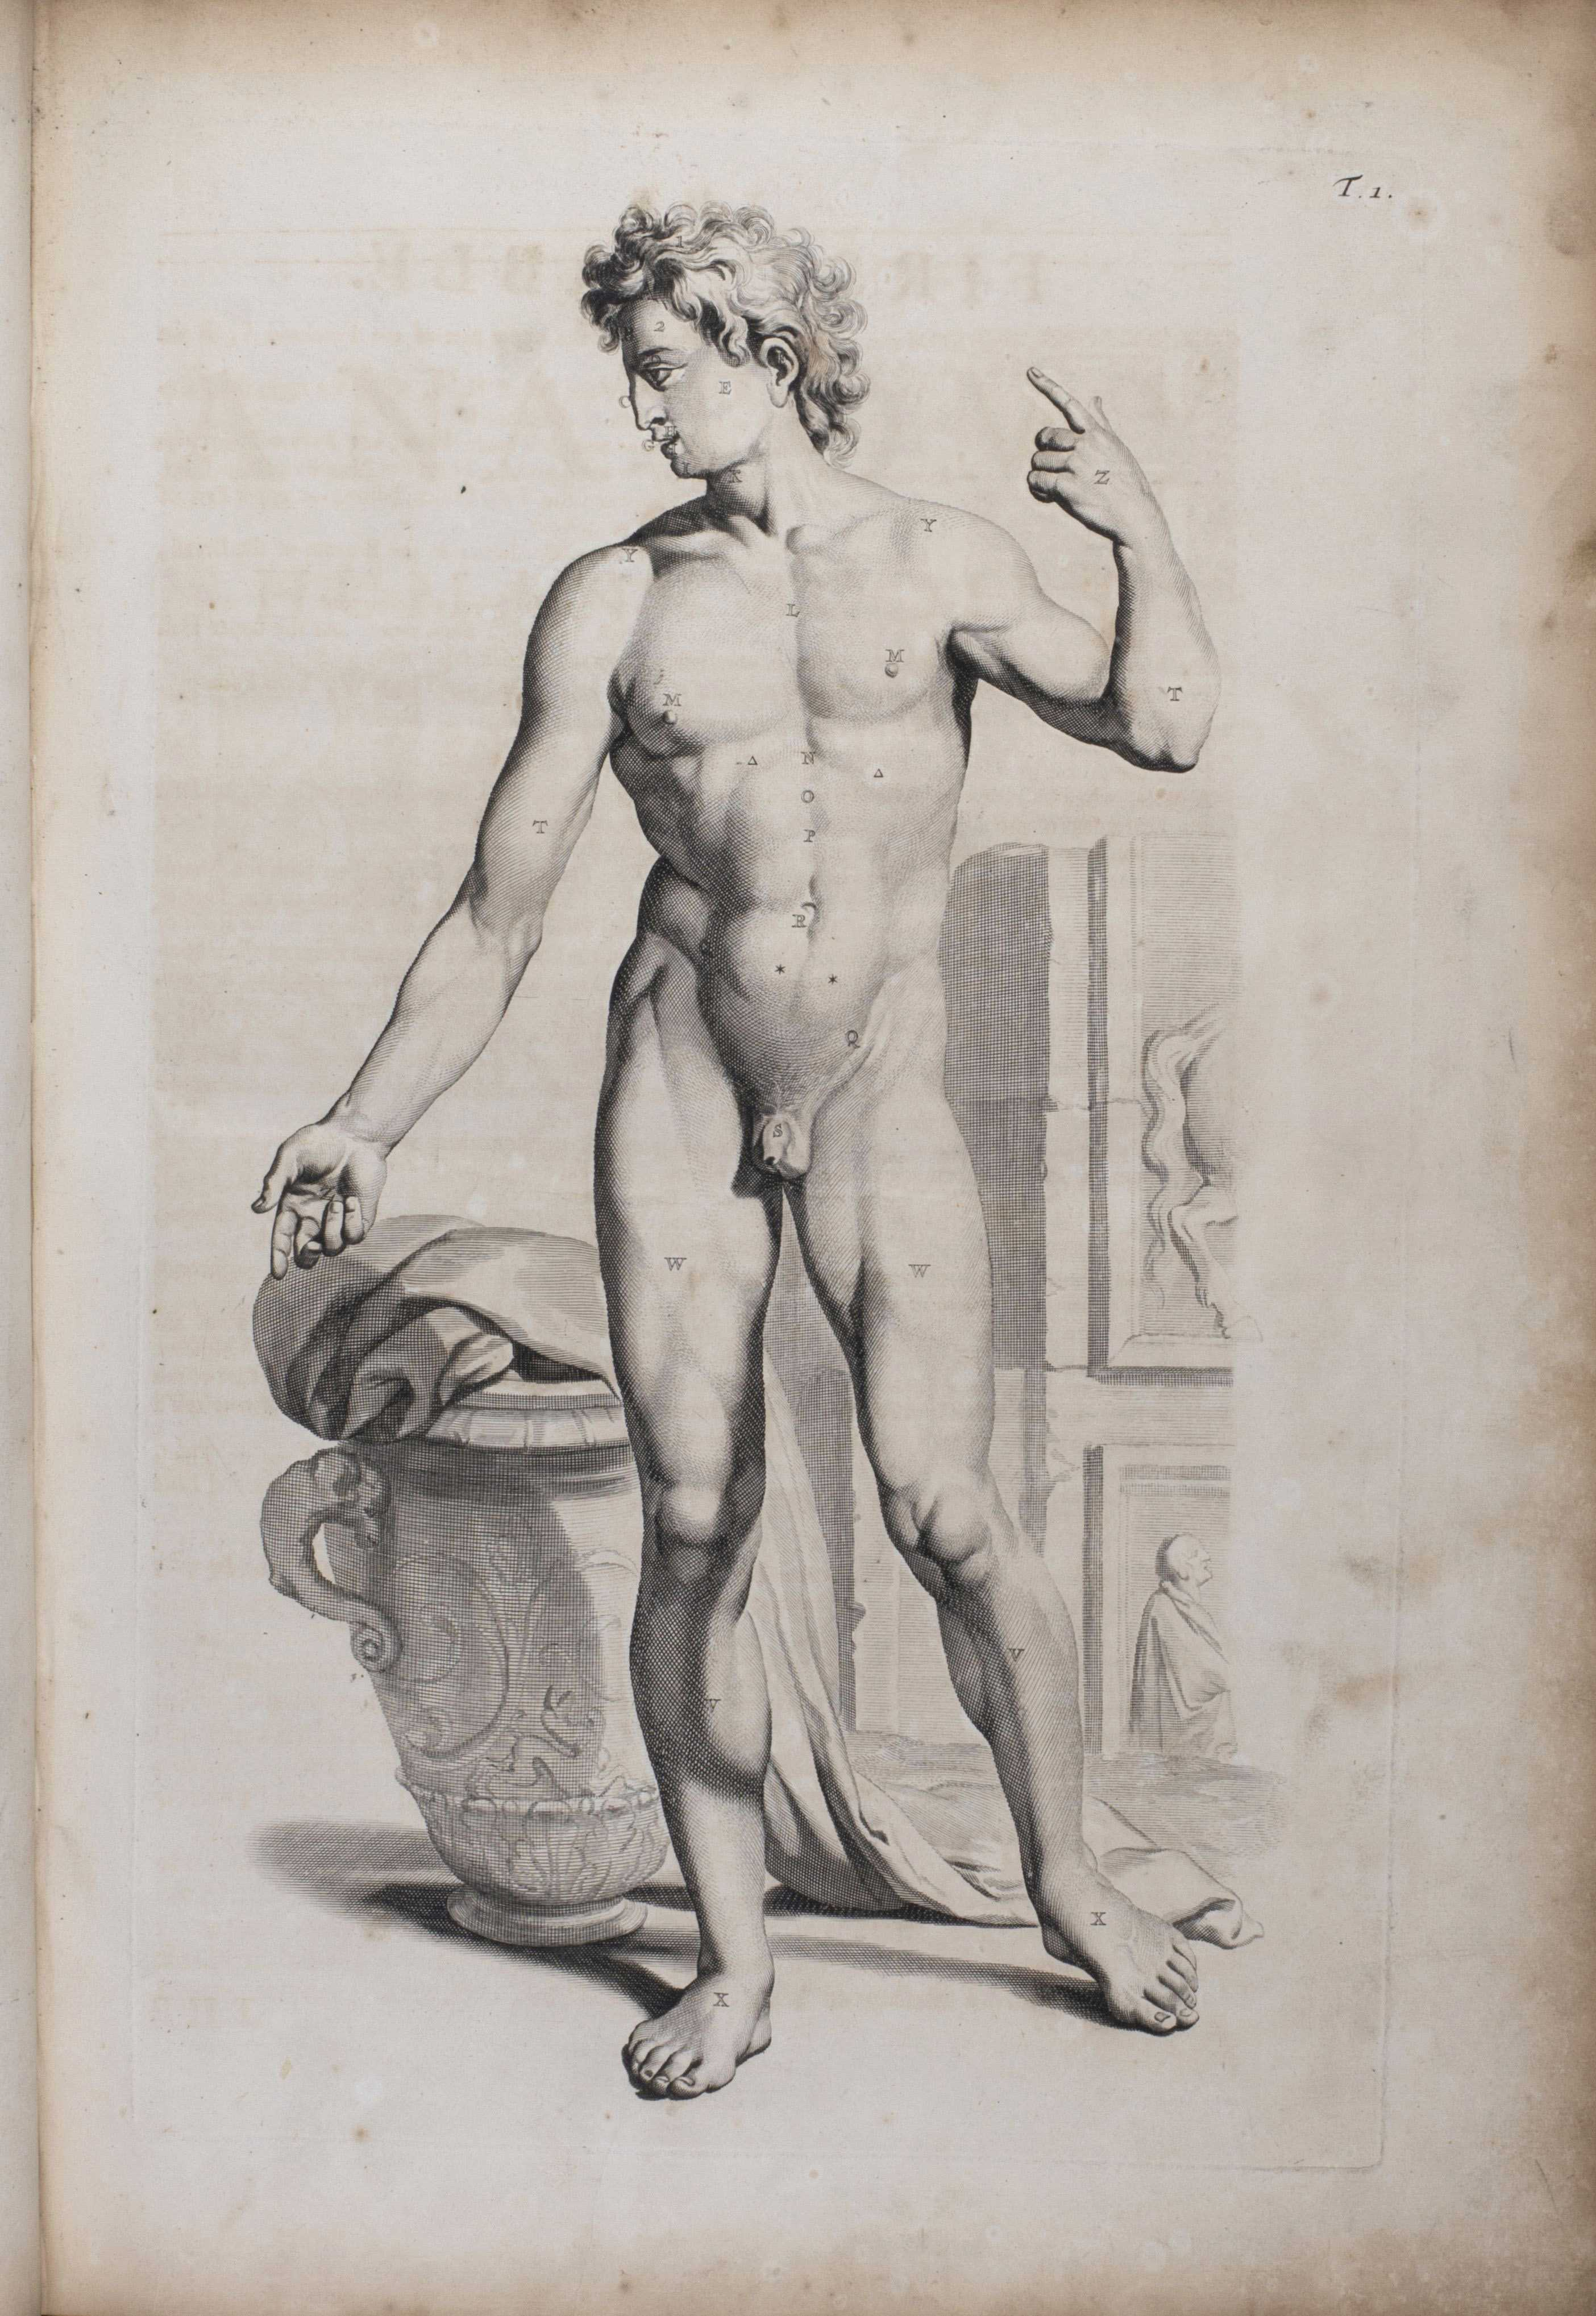 William Cowper's The anatomy of humane bodies, illustration